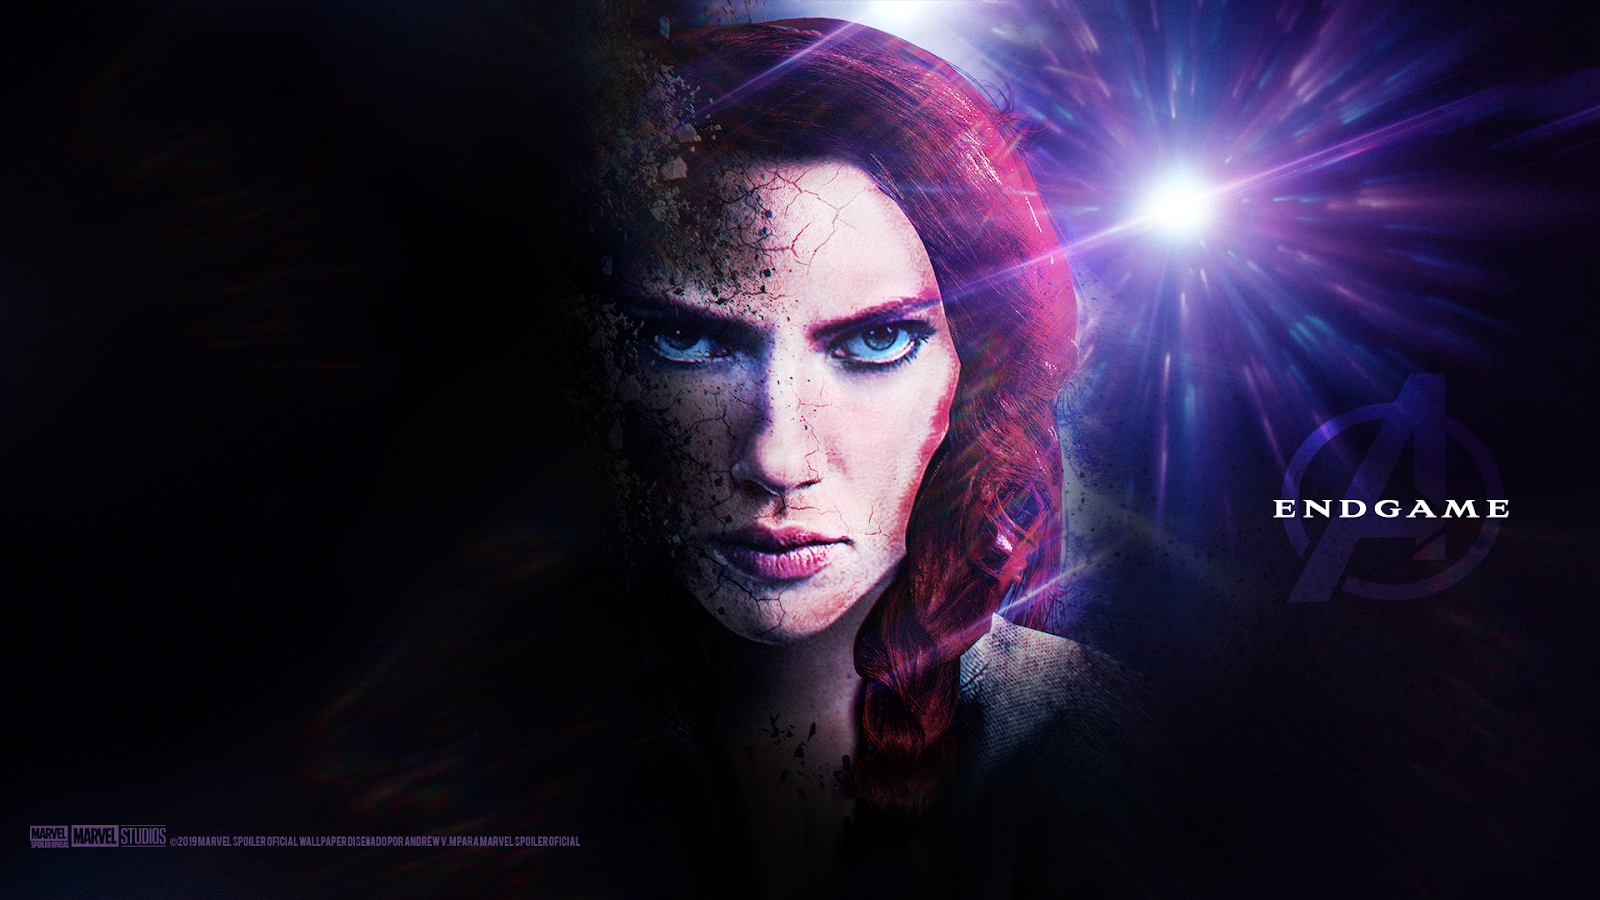 15 Black Widow Endgame Wallpapers On Wallpapersafari